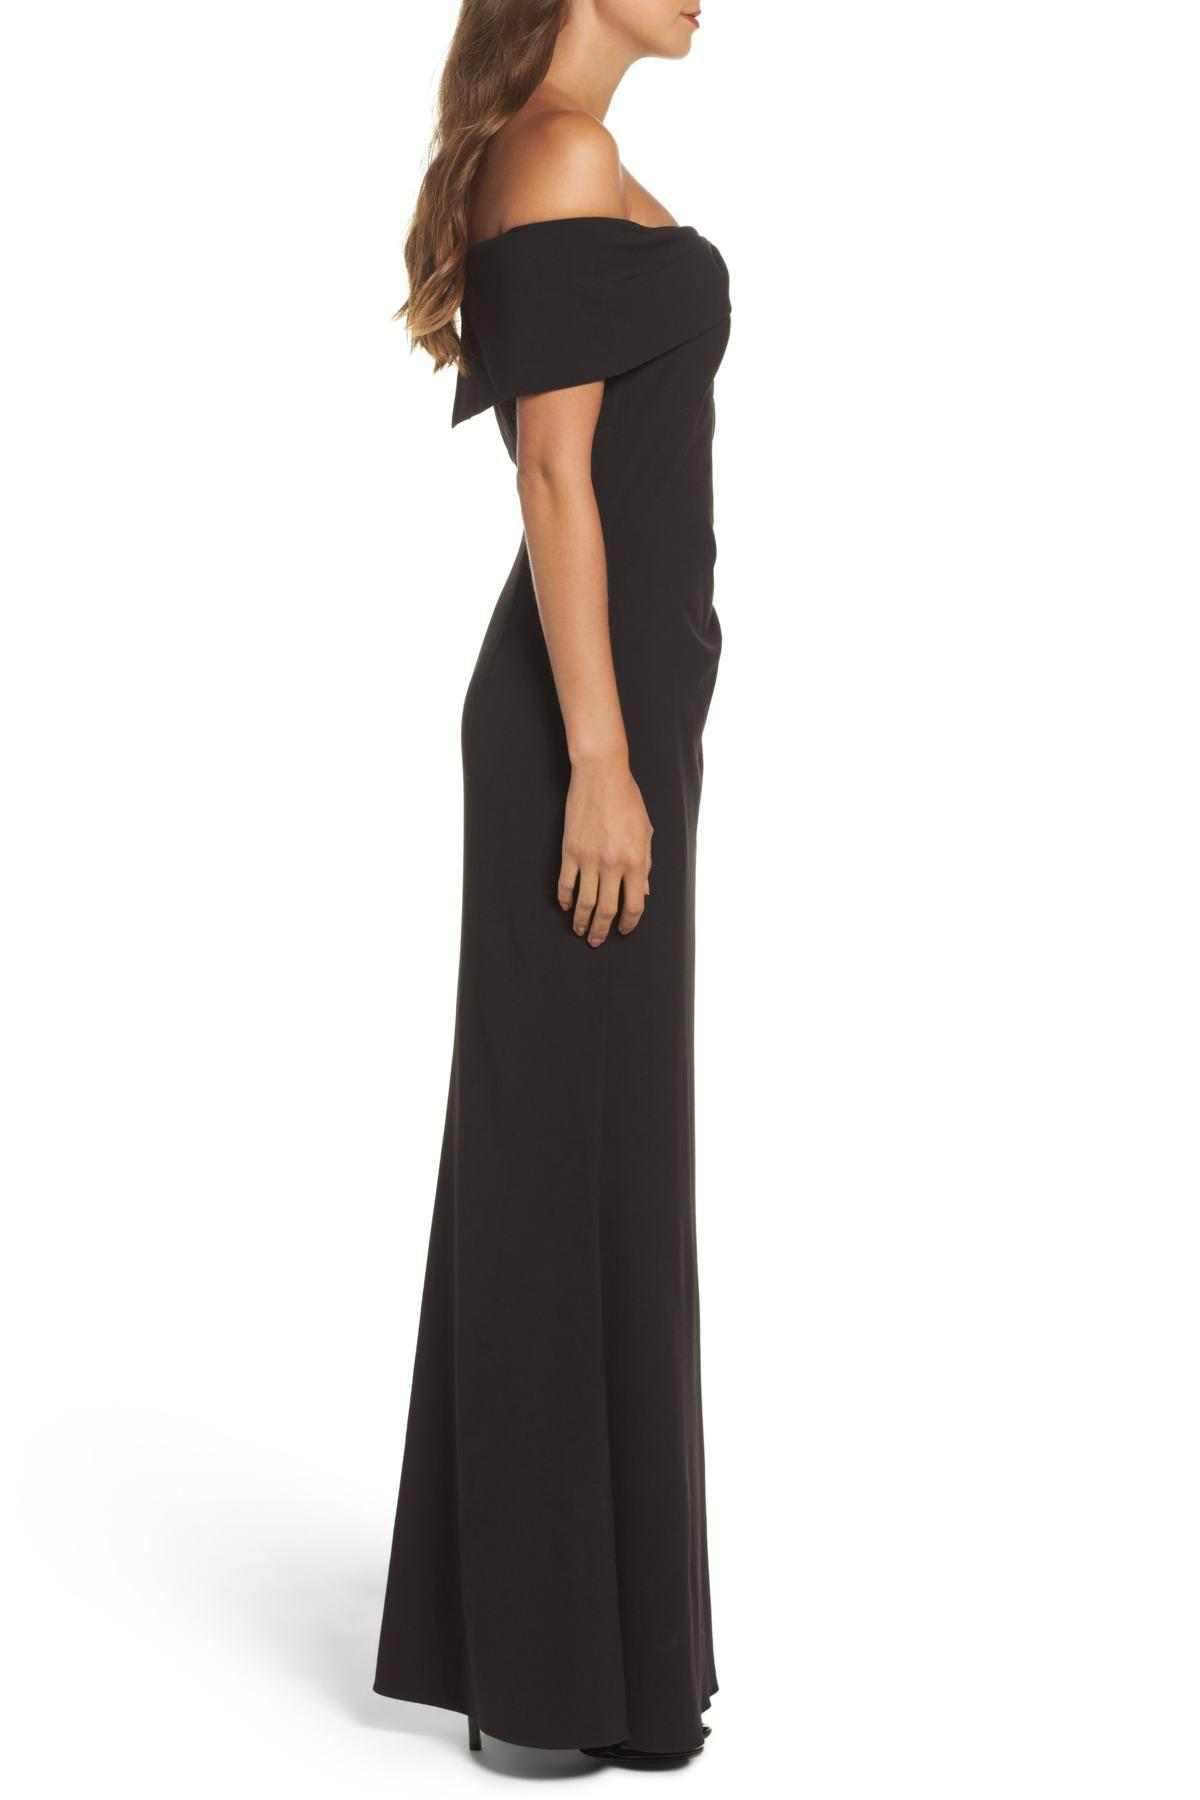 86a52a706440 Lyst - Eliza J Knot Front Off The Shoulder Gown in Black